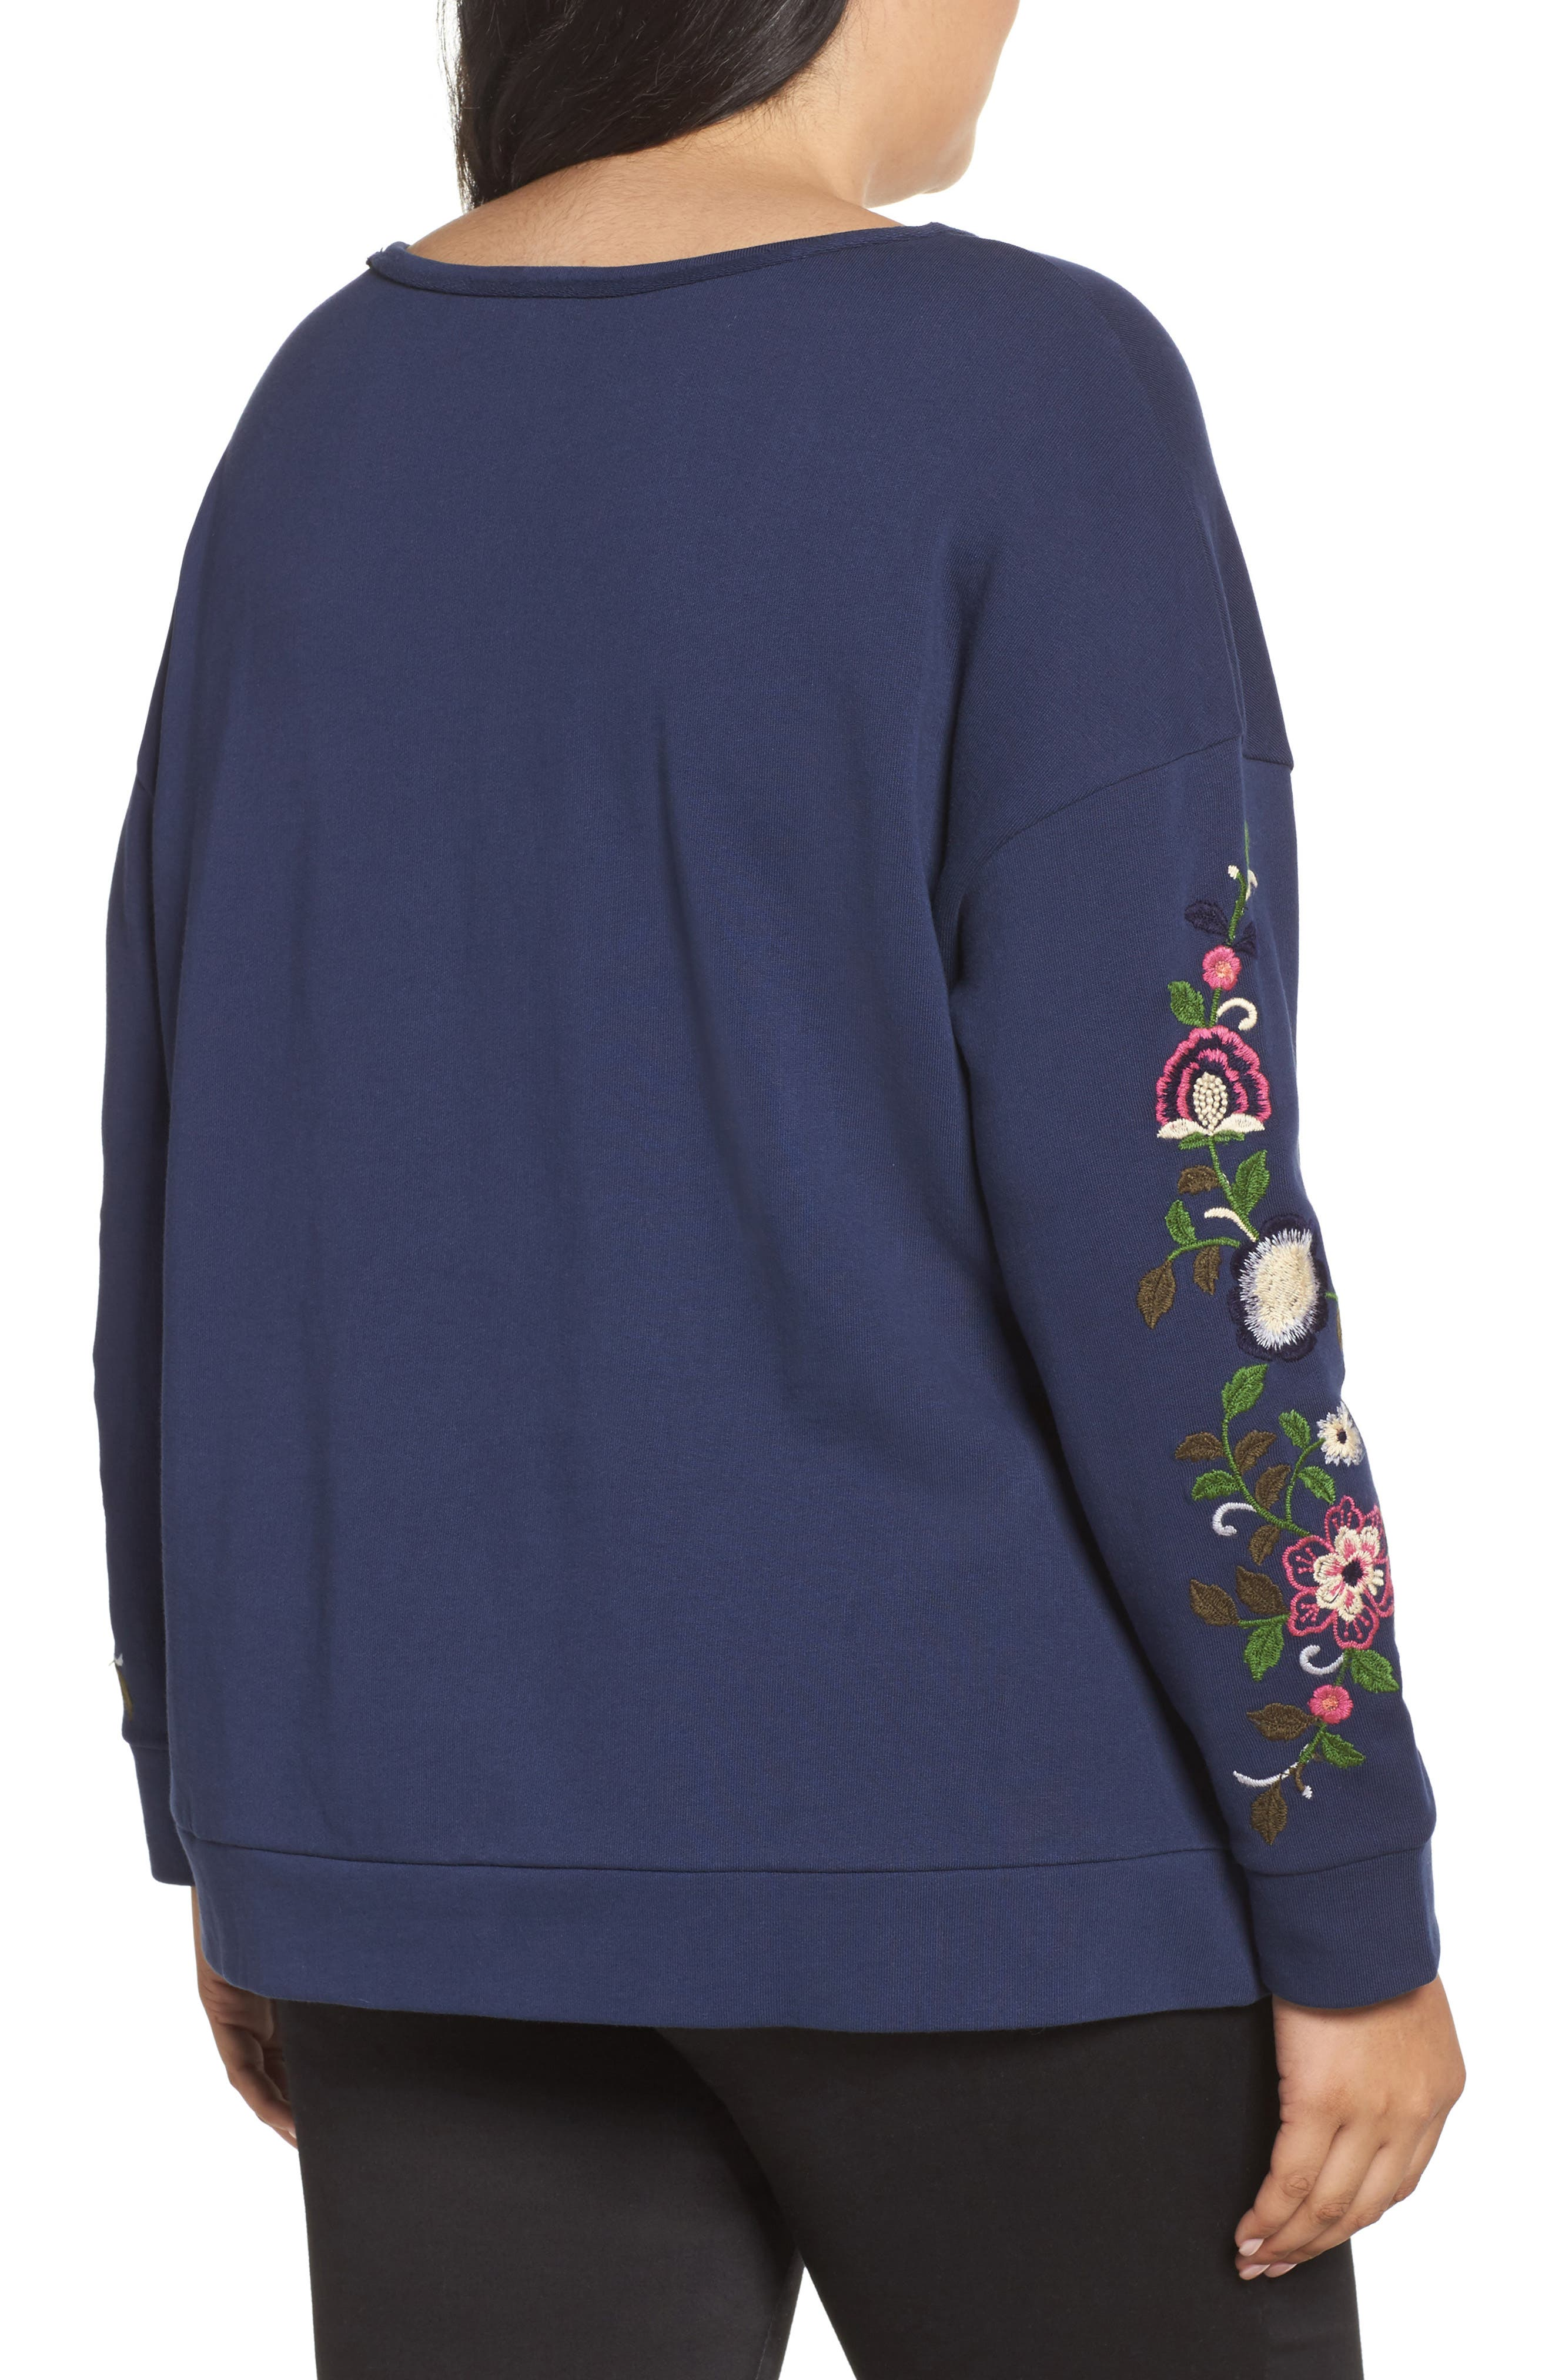 Embroidered Sleeve Sweatshirt,                             Alternate thumbnail 2, color,                             Navy- Rose Floral